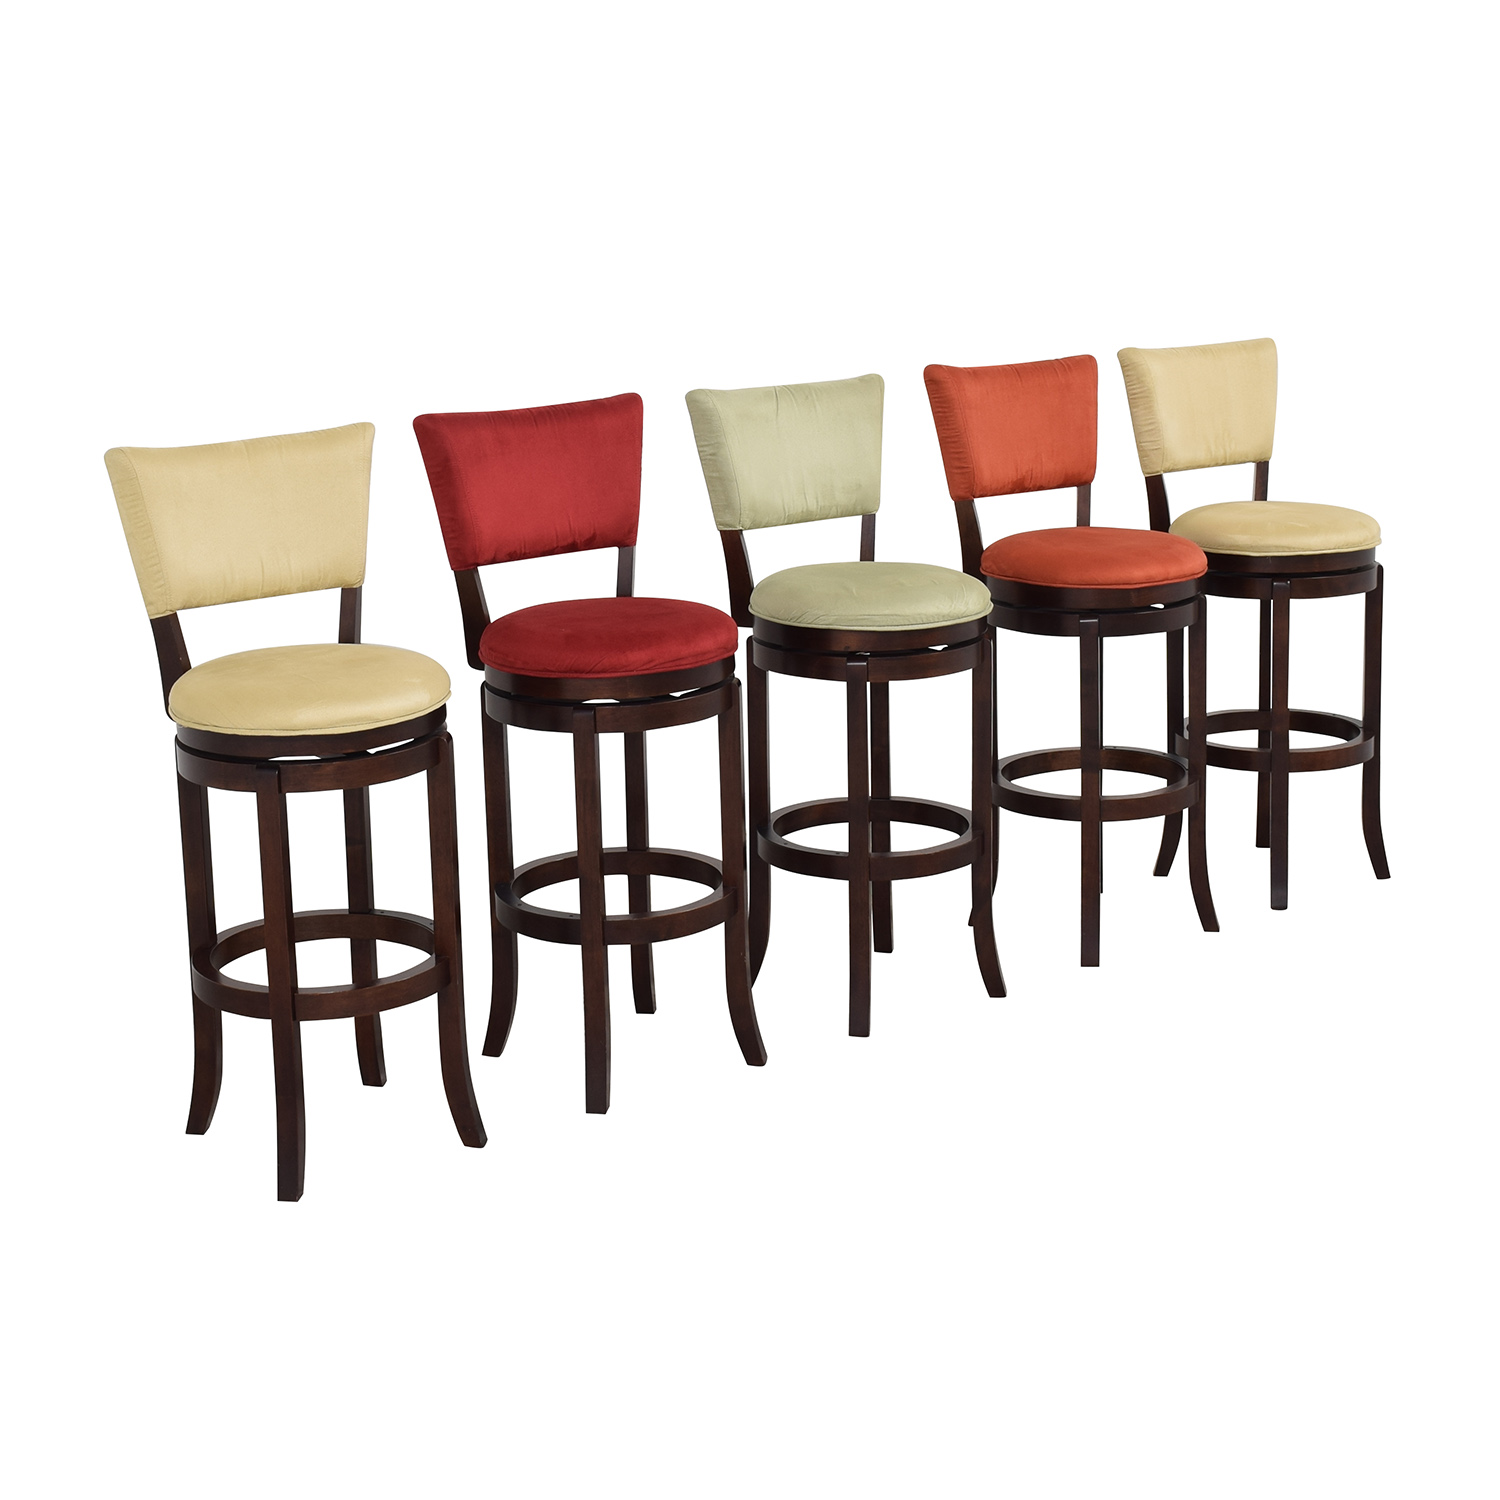 buy Rooms To Go Rooms To Go Keefer Bar Stools online